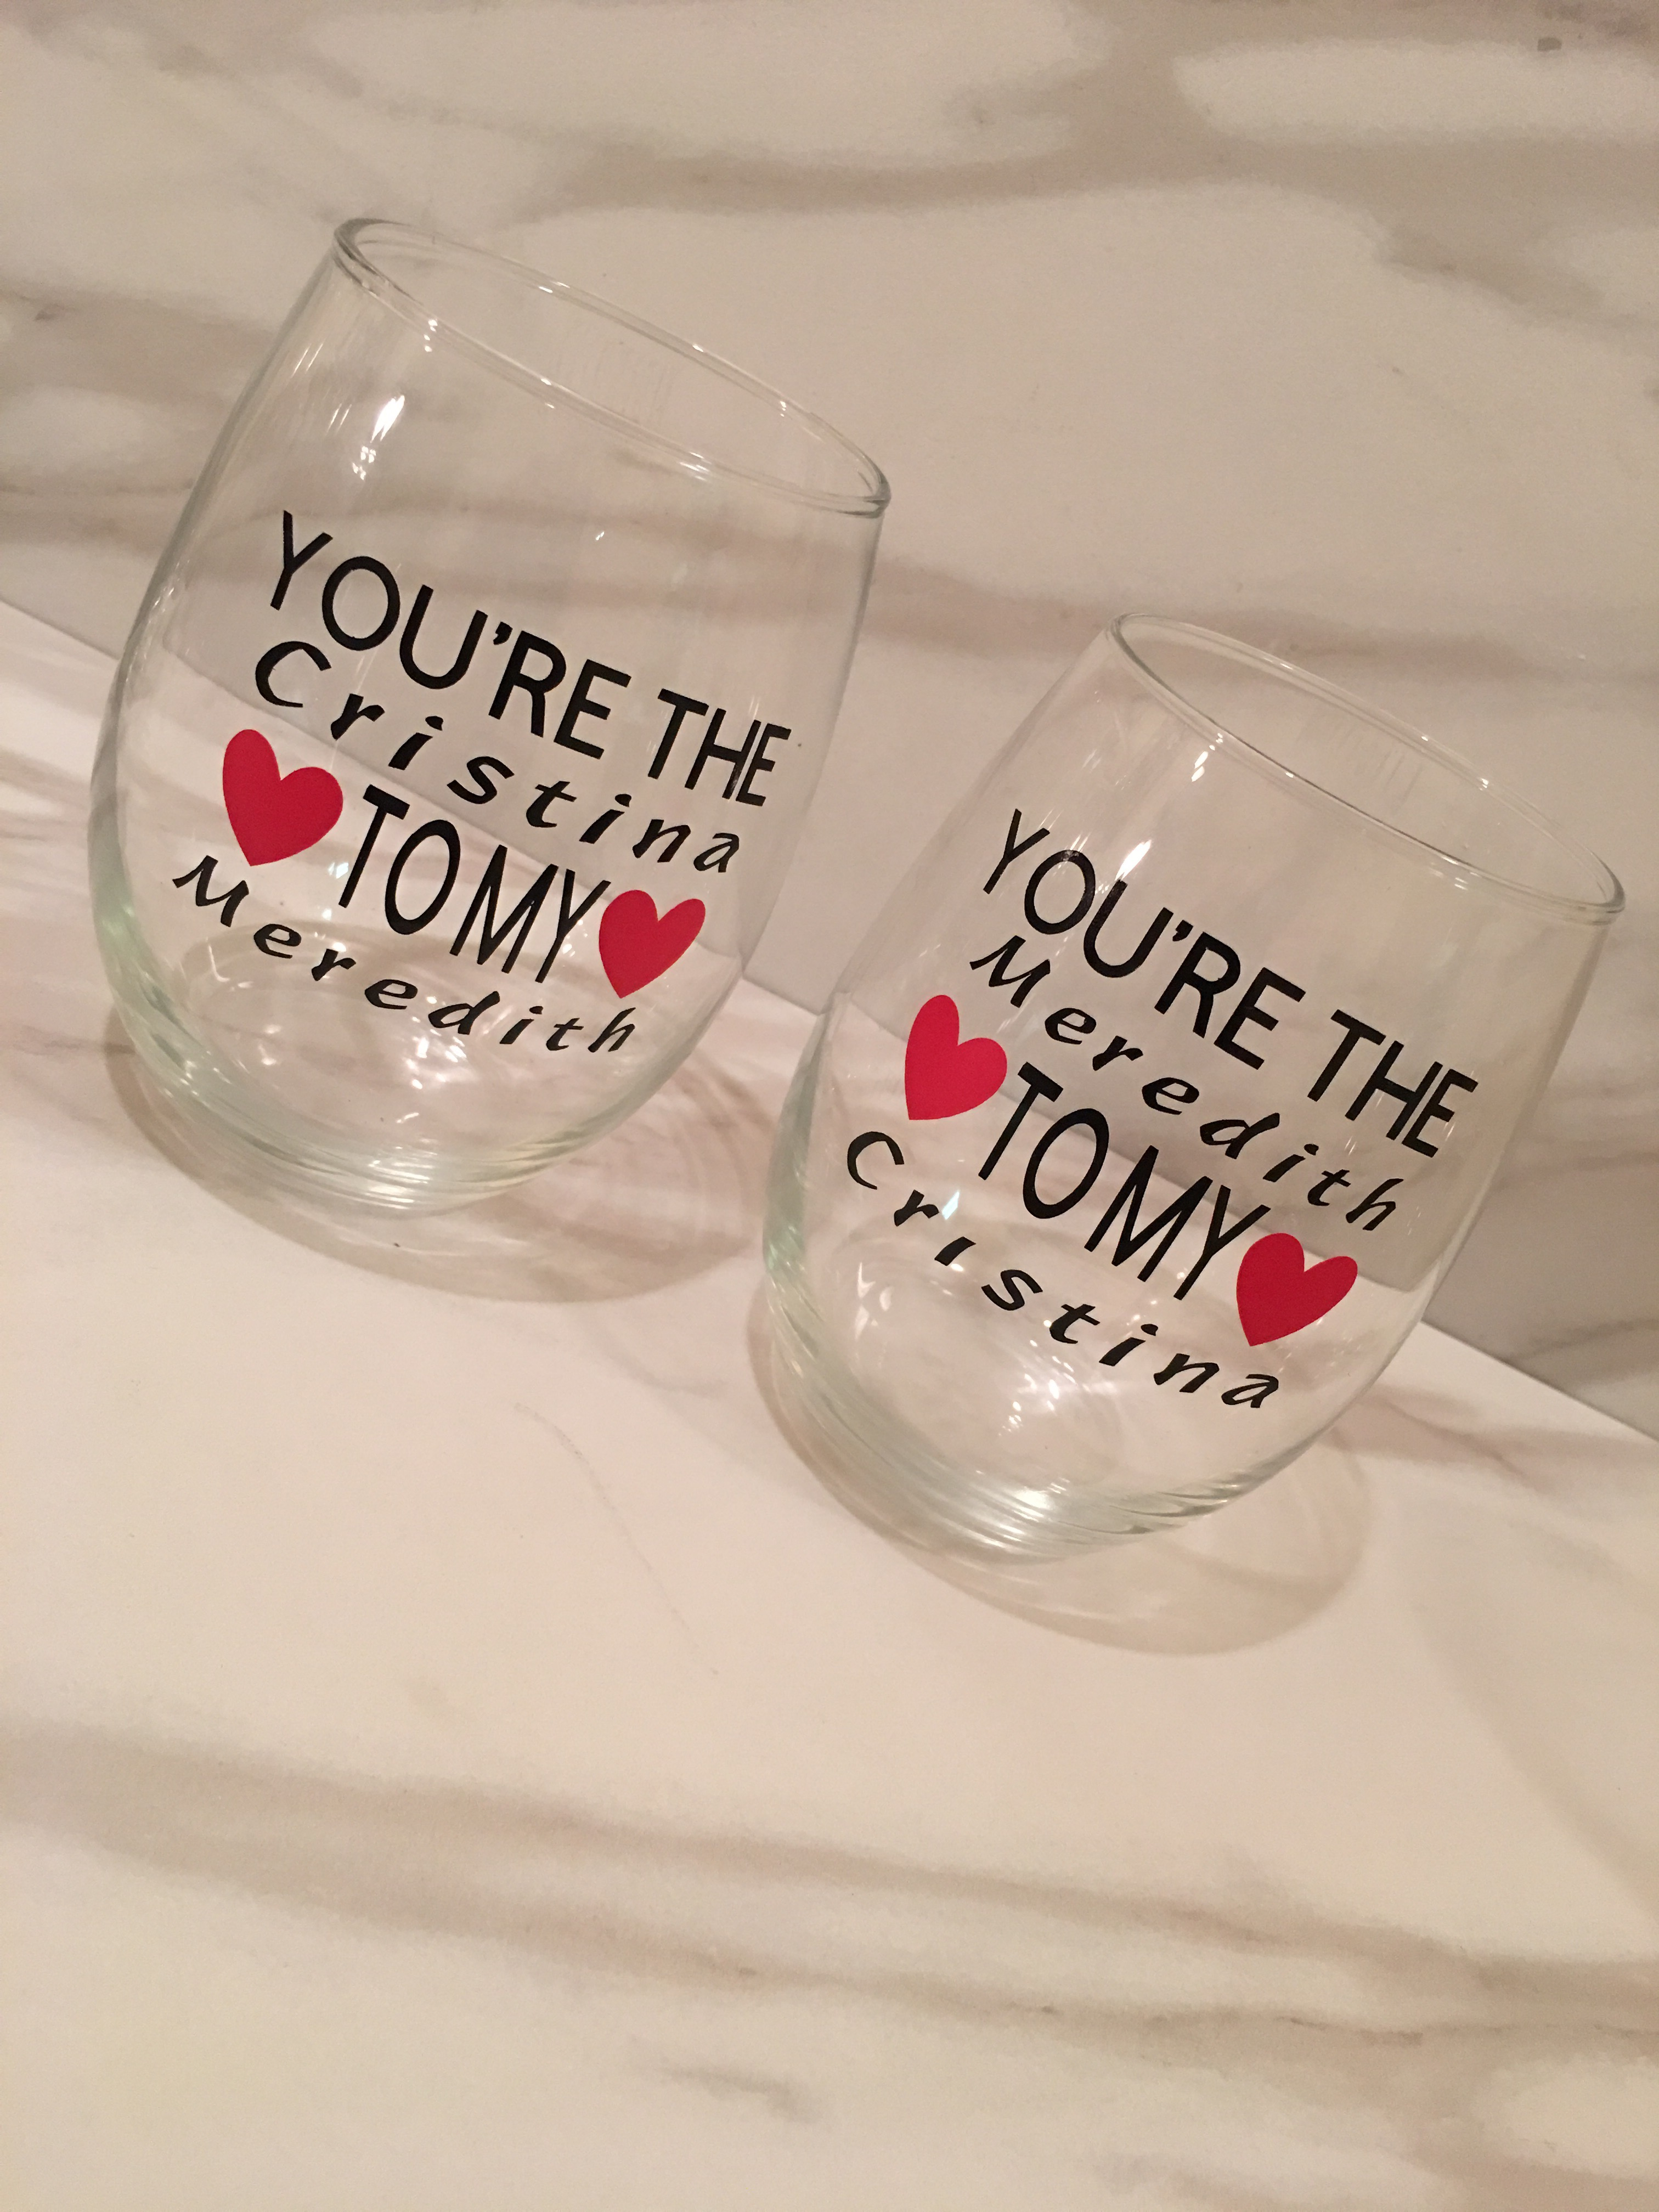 Youre the Meredith to my Cristina Youre the Cristina to my Meredith Greys Anatomy Best Friends Wine Glass Greys Anatomy Wine Glass